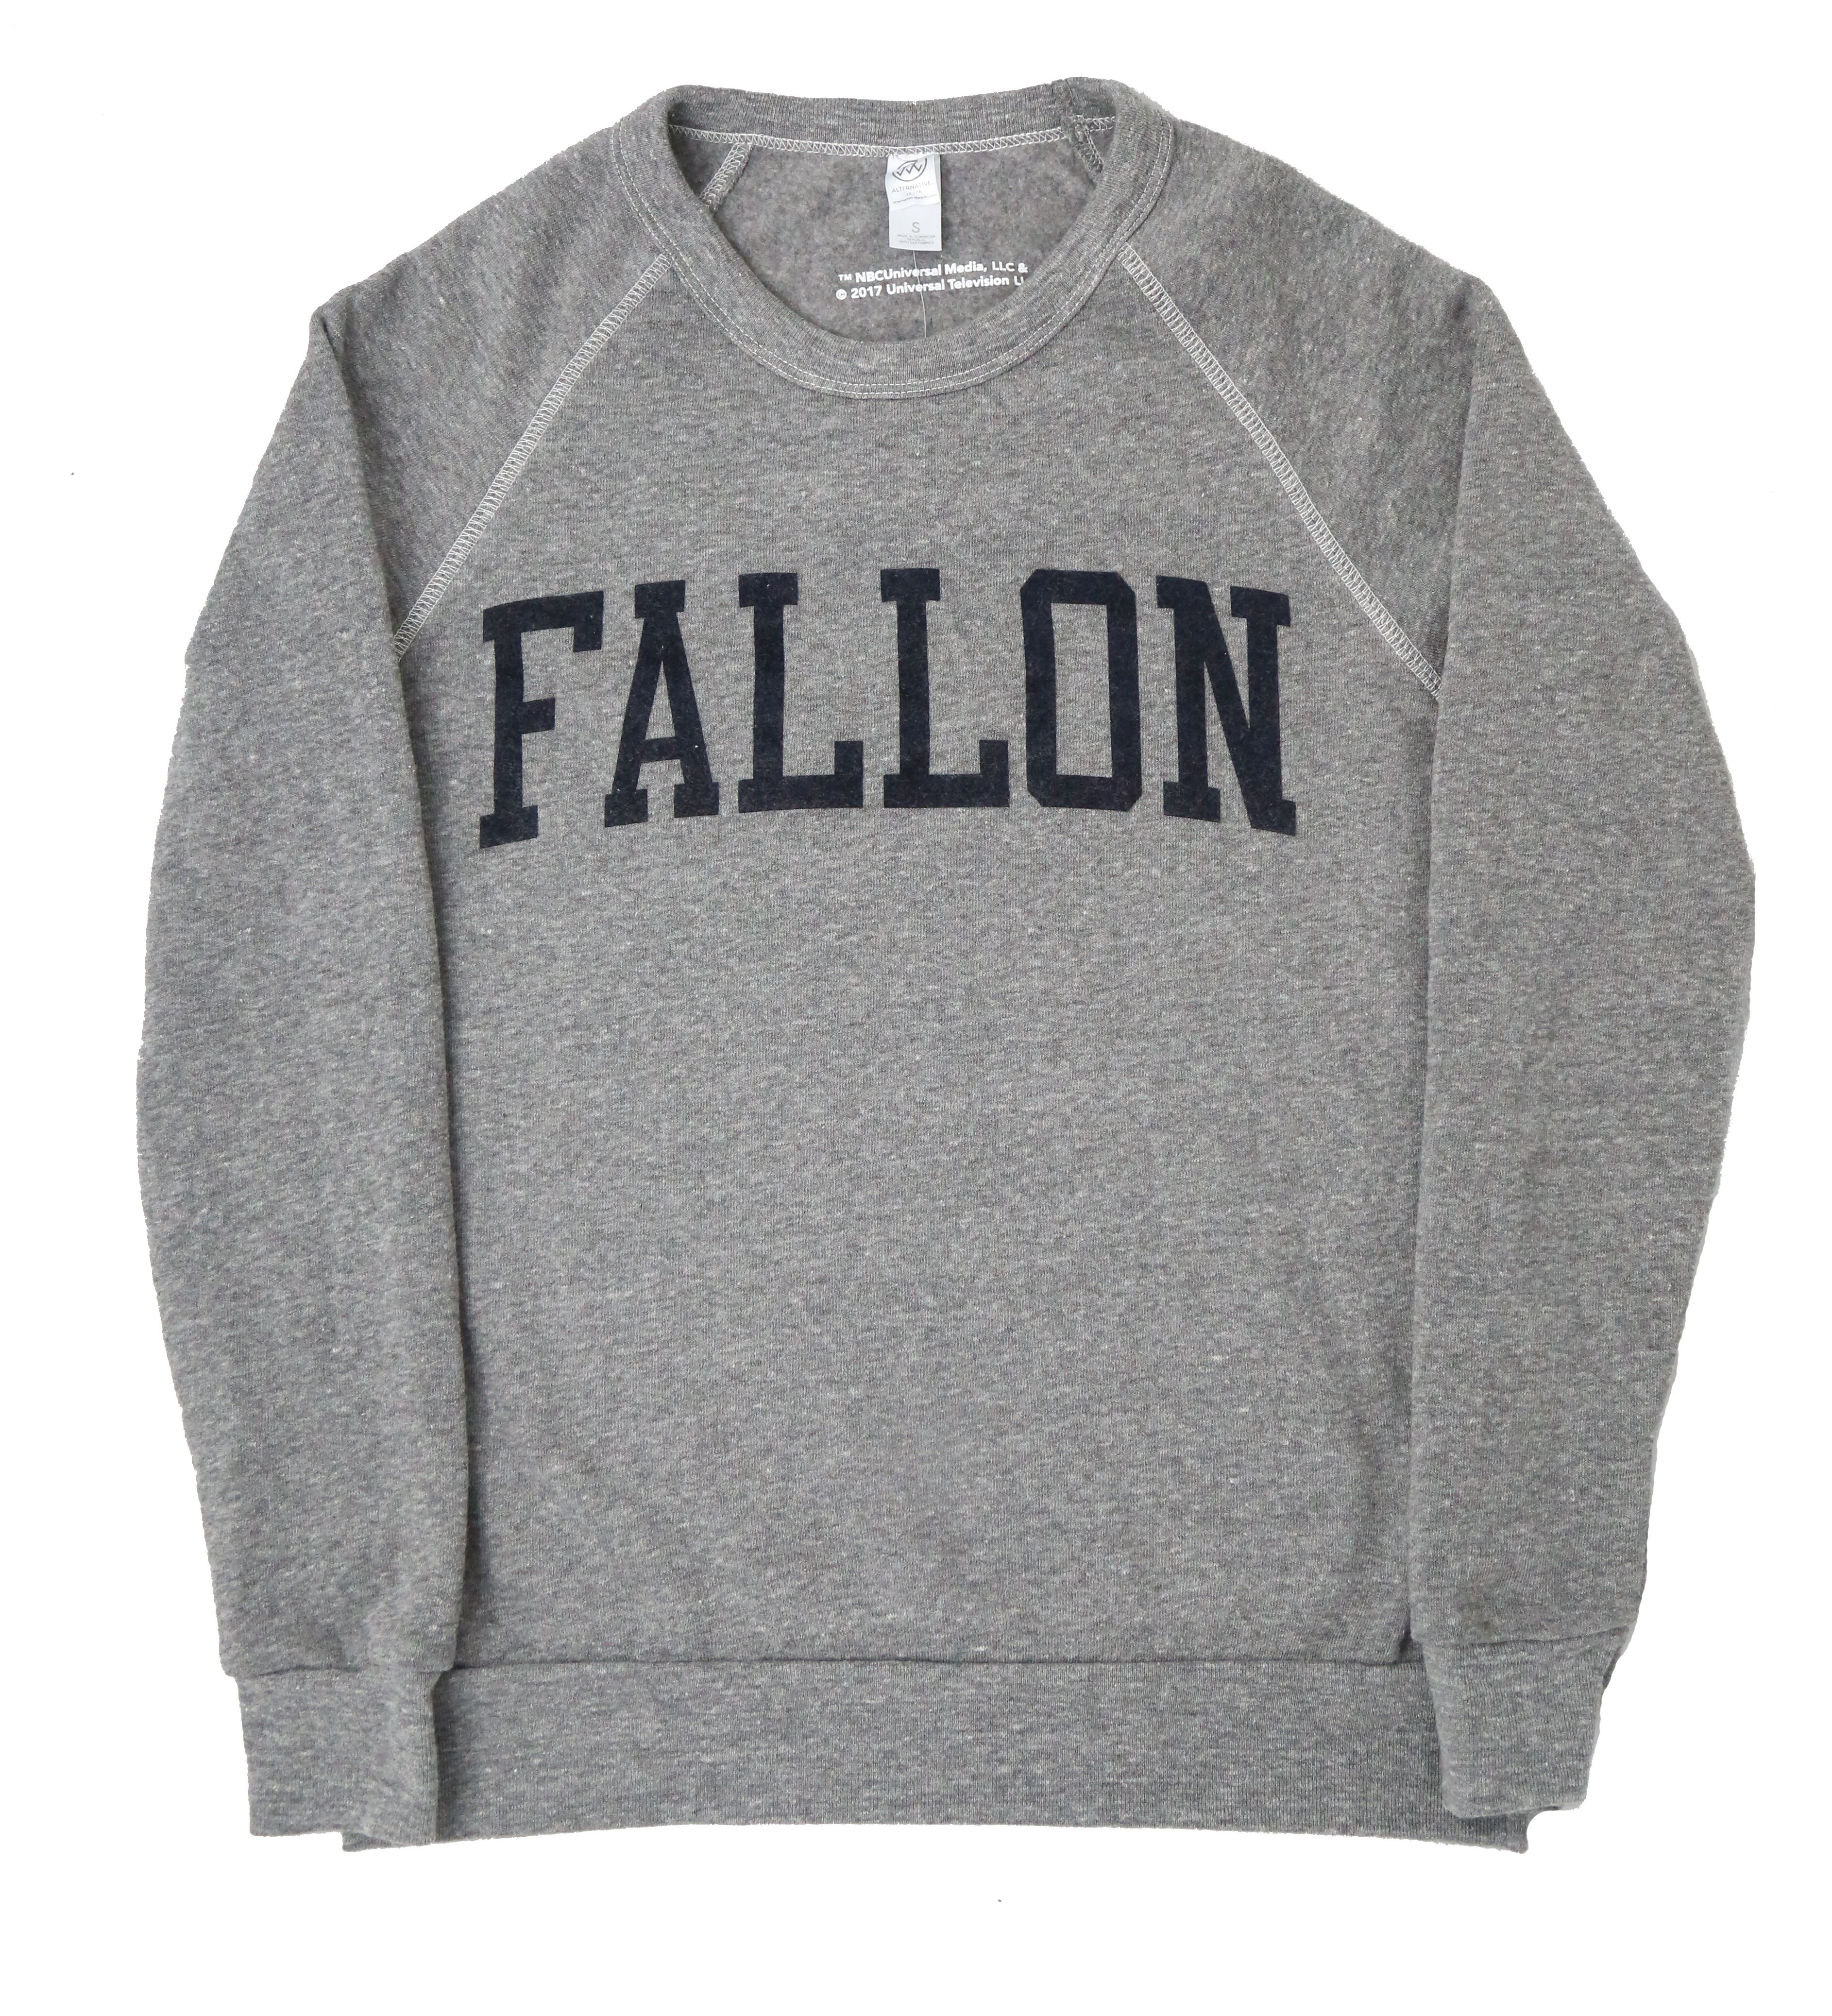 The Tonight Show Starring Jimmy Fallon Sweatshirt || Comfortable and ...